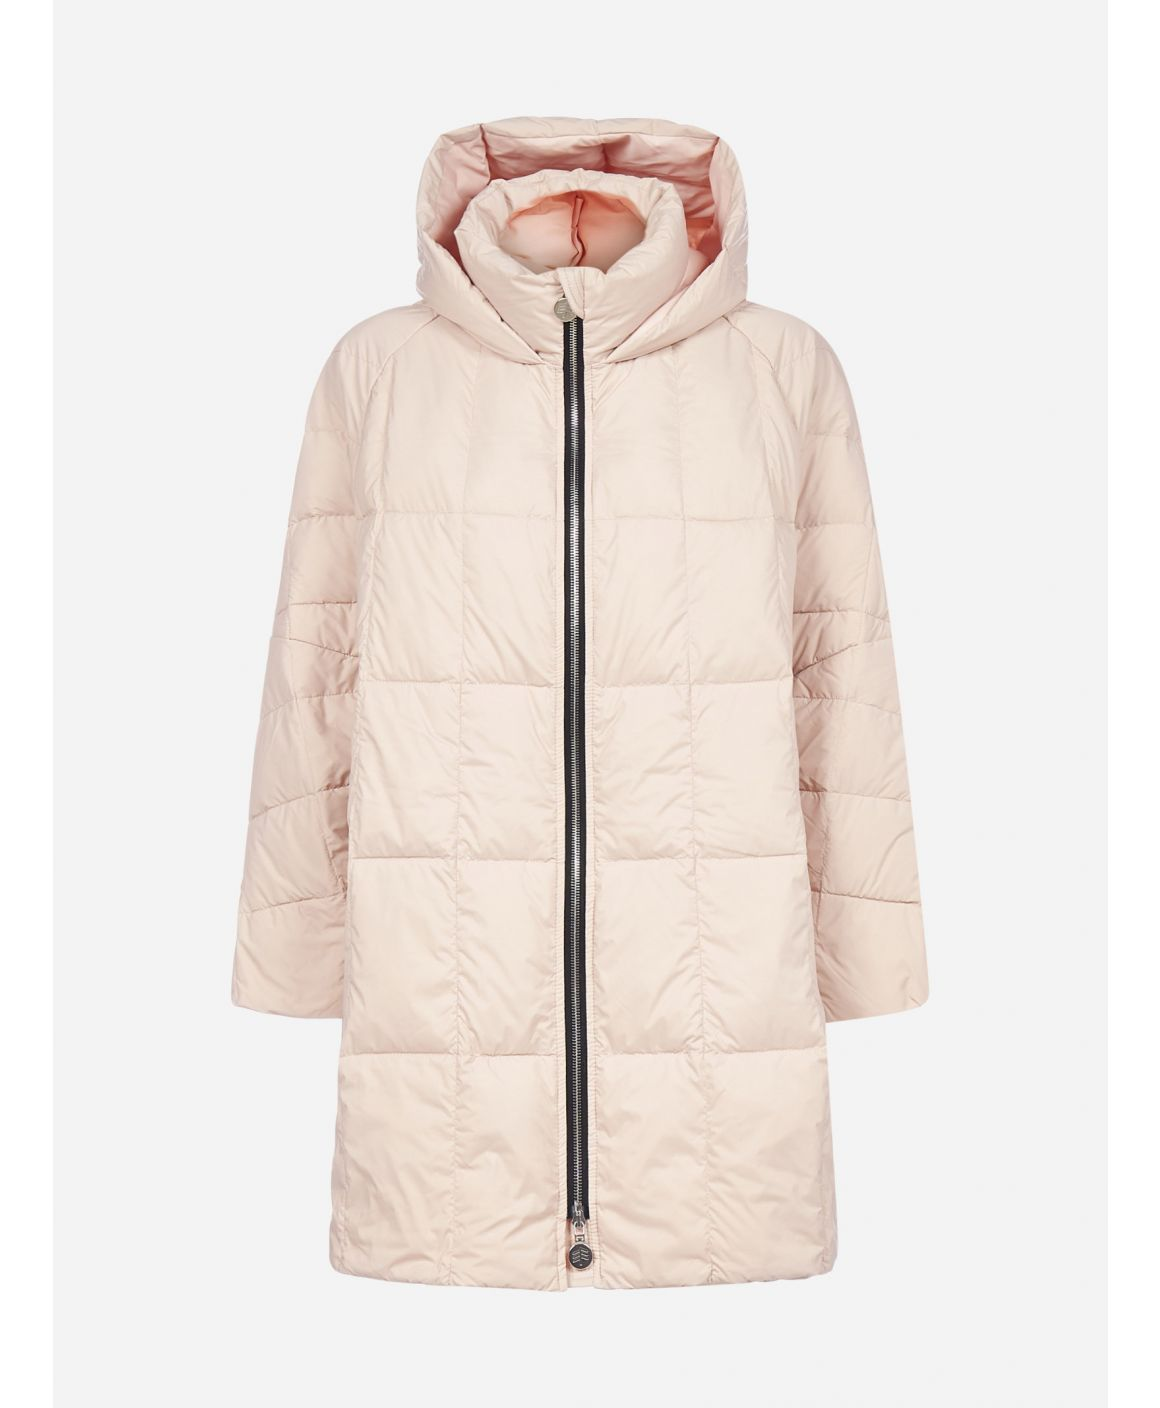 Pyramide cropped hooded nylon down jacket